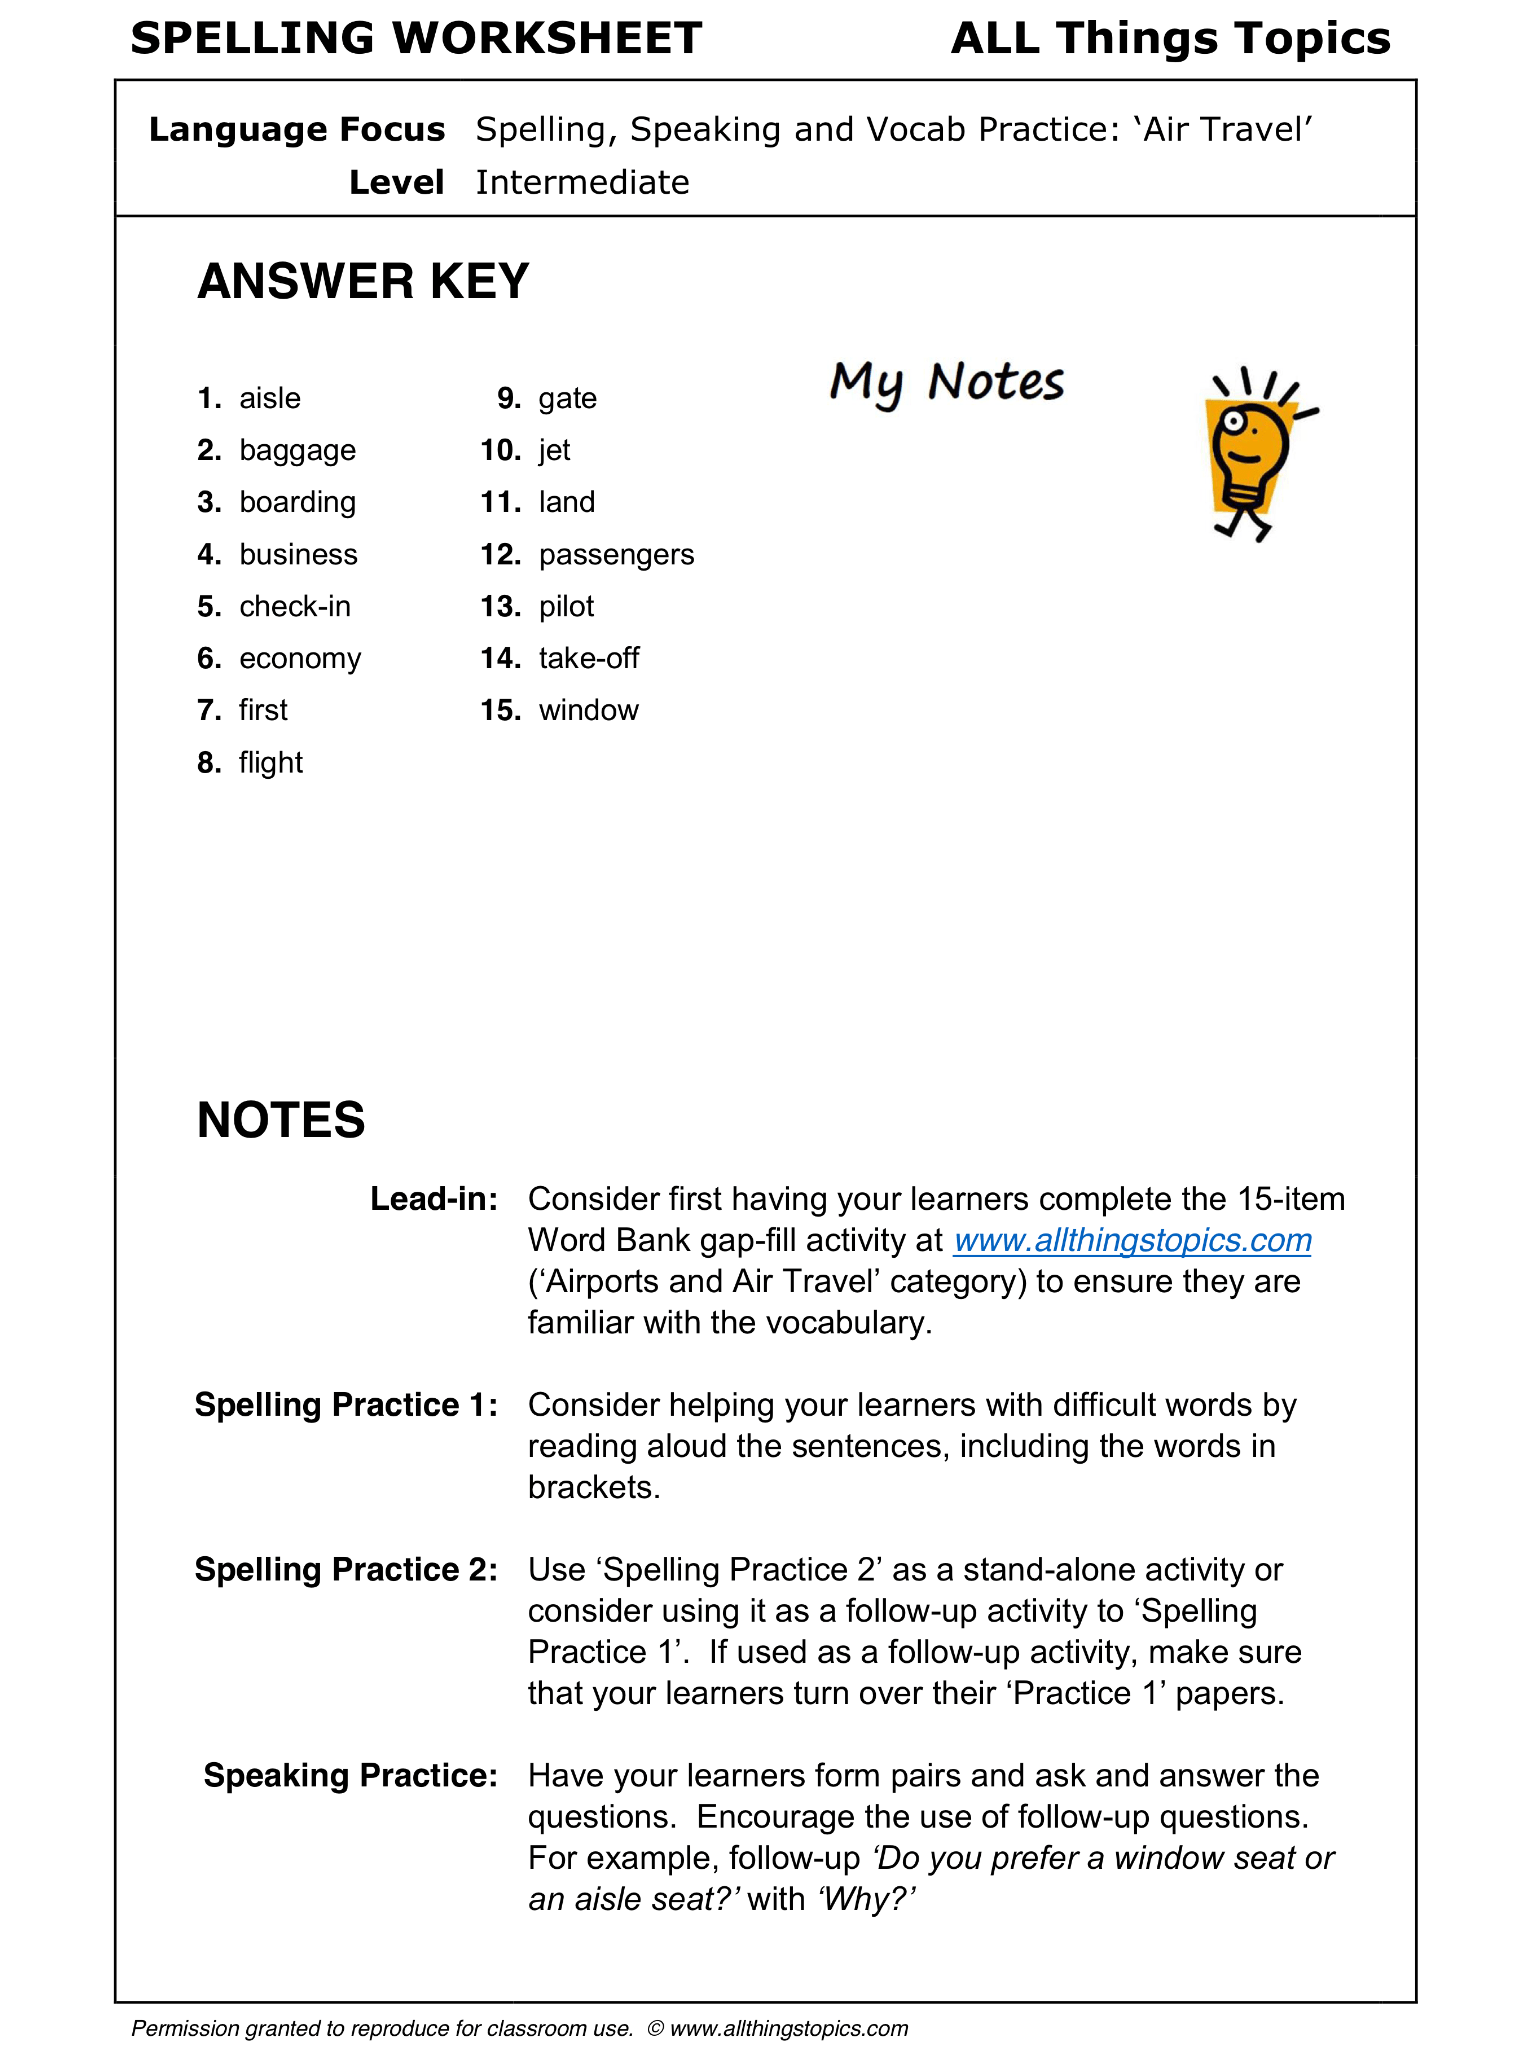 Airports And Air Travel Spelling Worksheet Air Travel 1 2